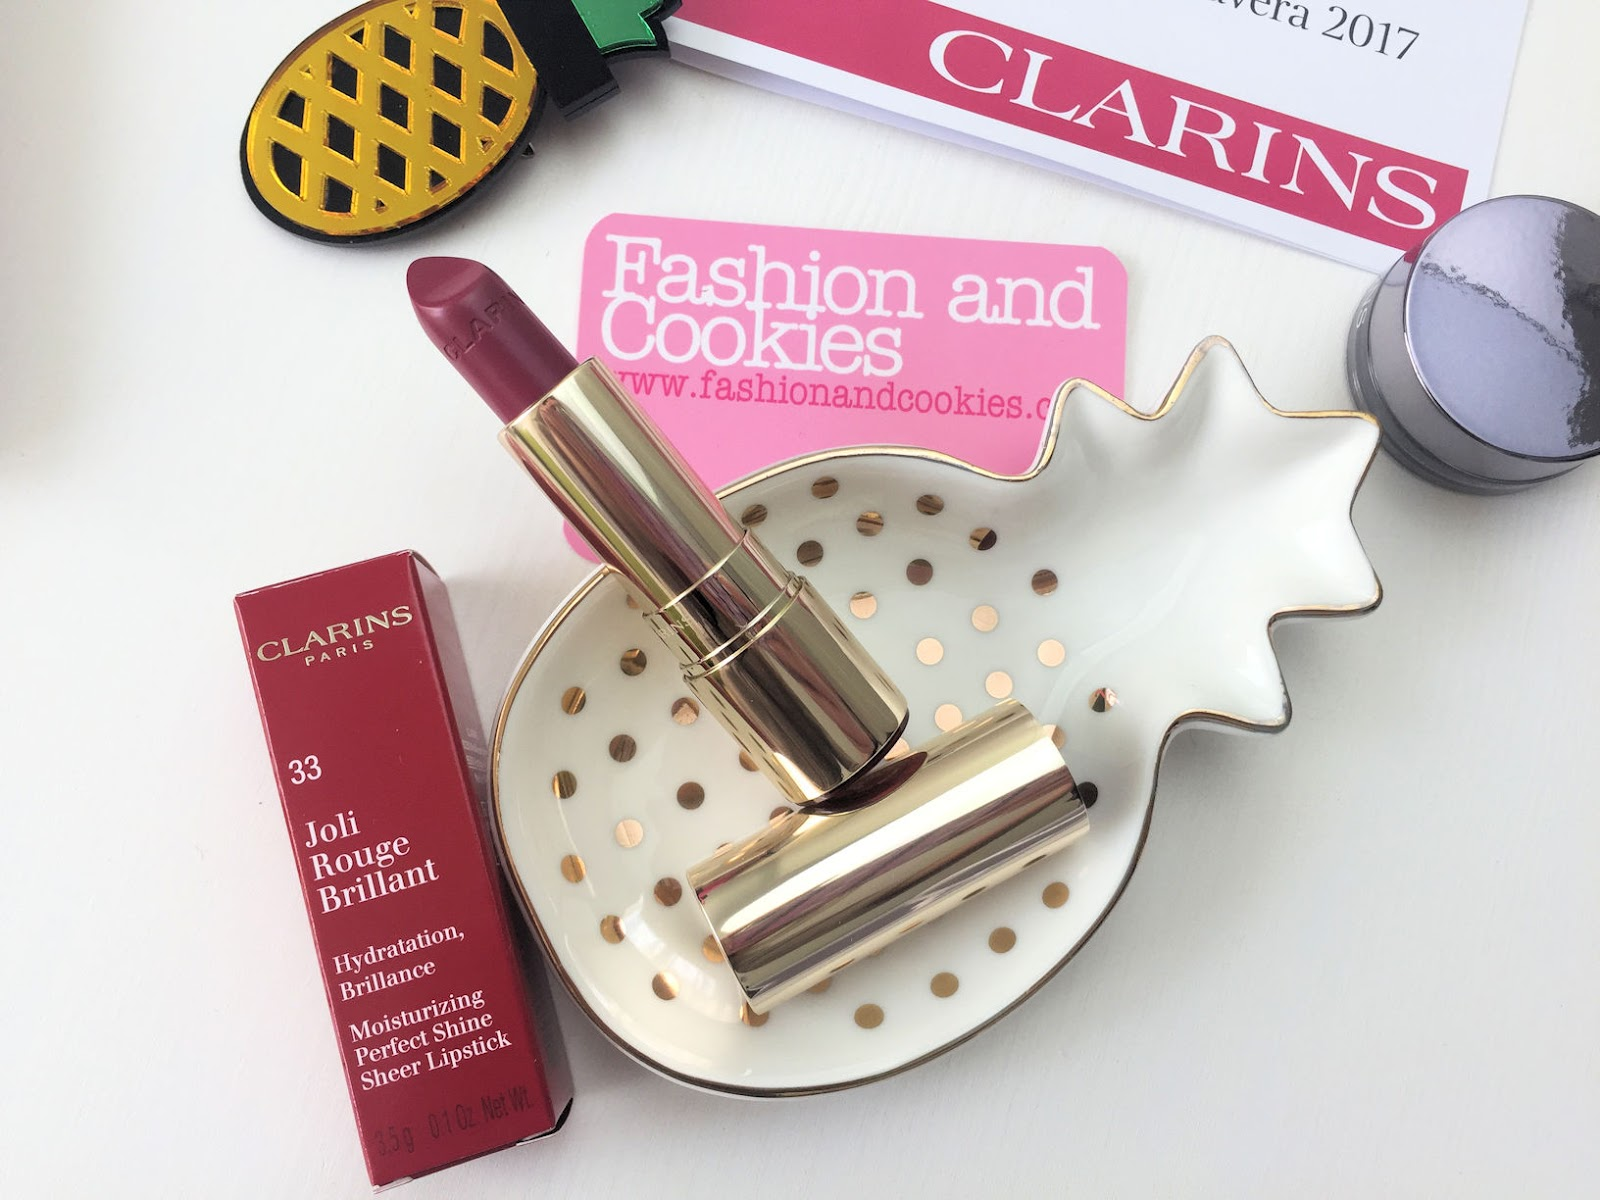 Clarins Joli Rouge Brilliant lipstick makeup Spring 2017 review su Fashion and Cookies beauty blog, beauty blogger